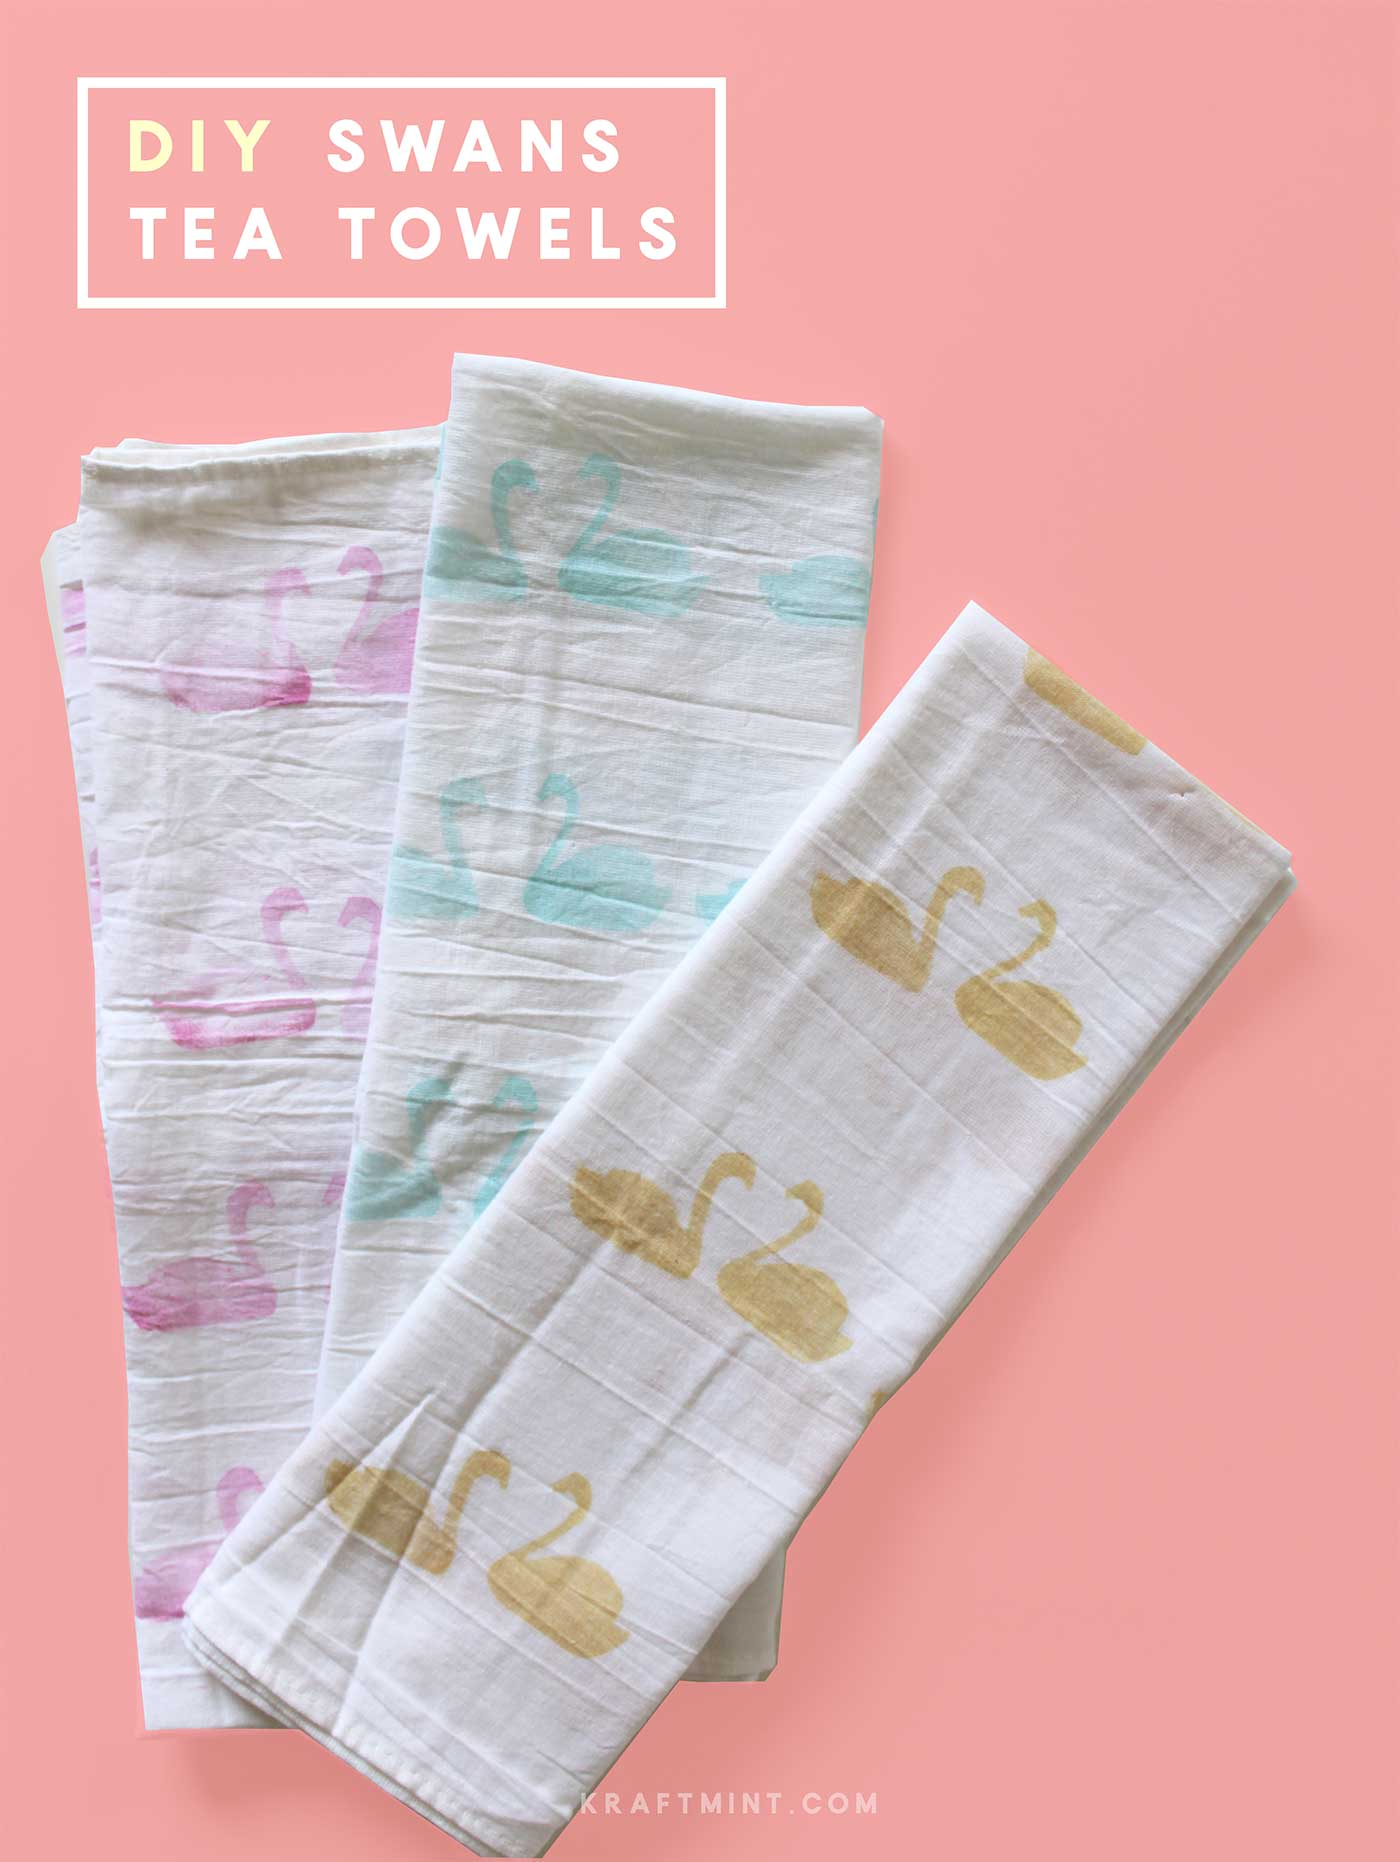 DIY Swens tea towels